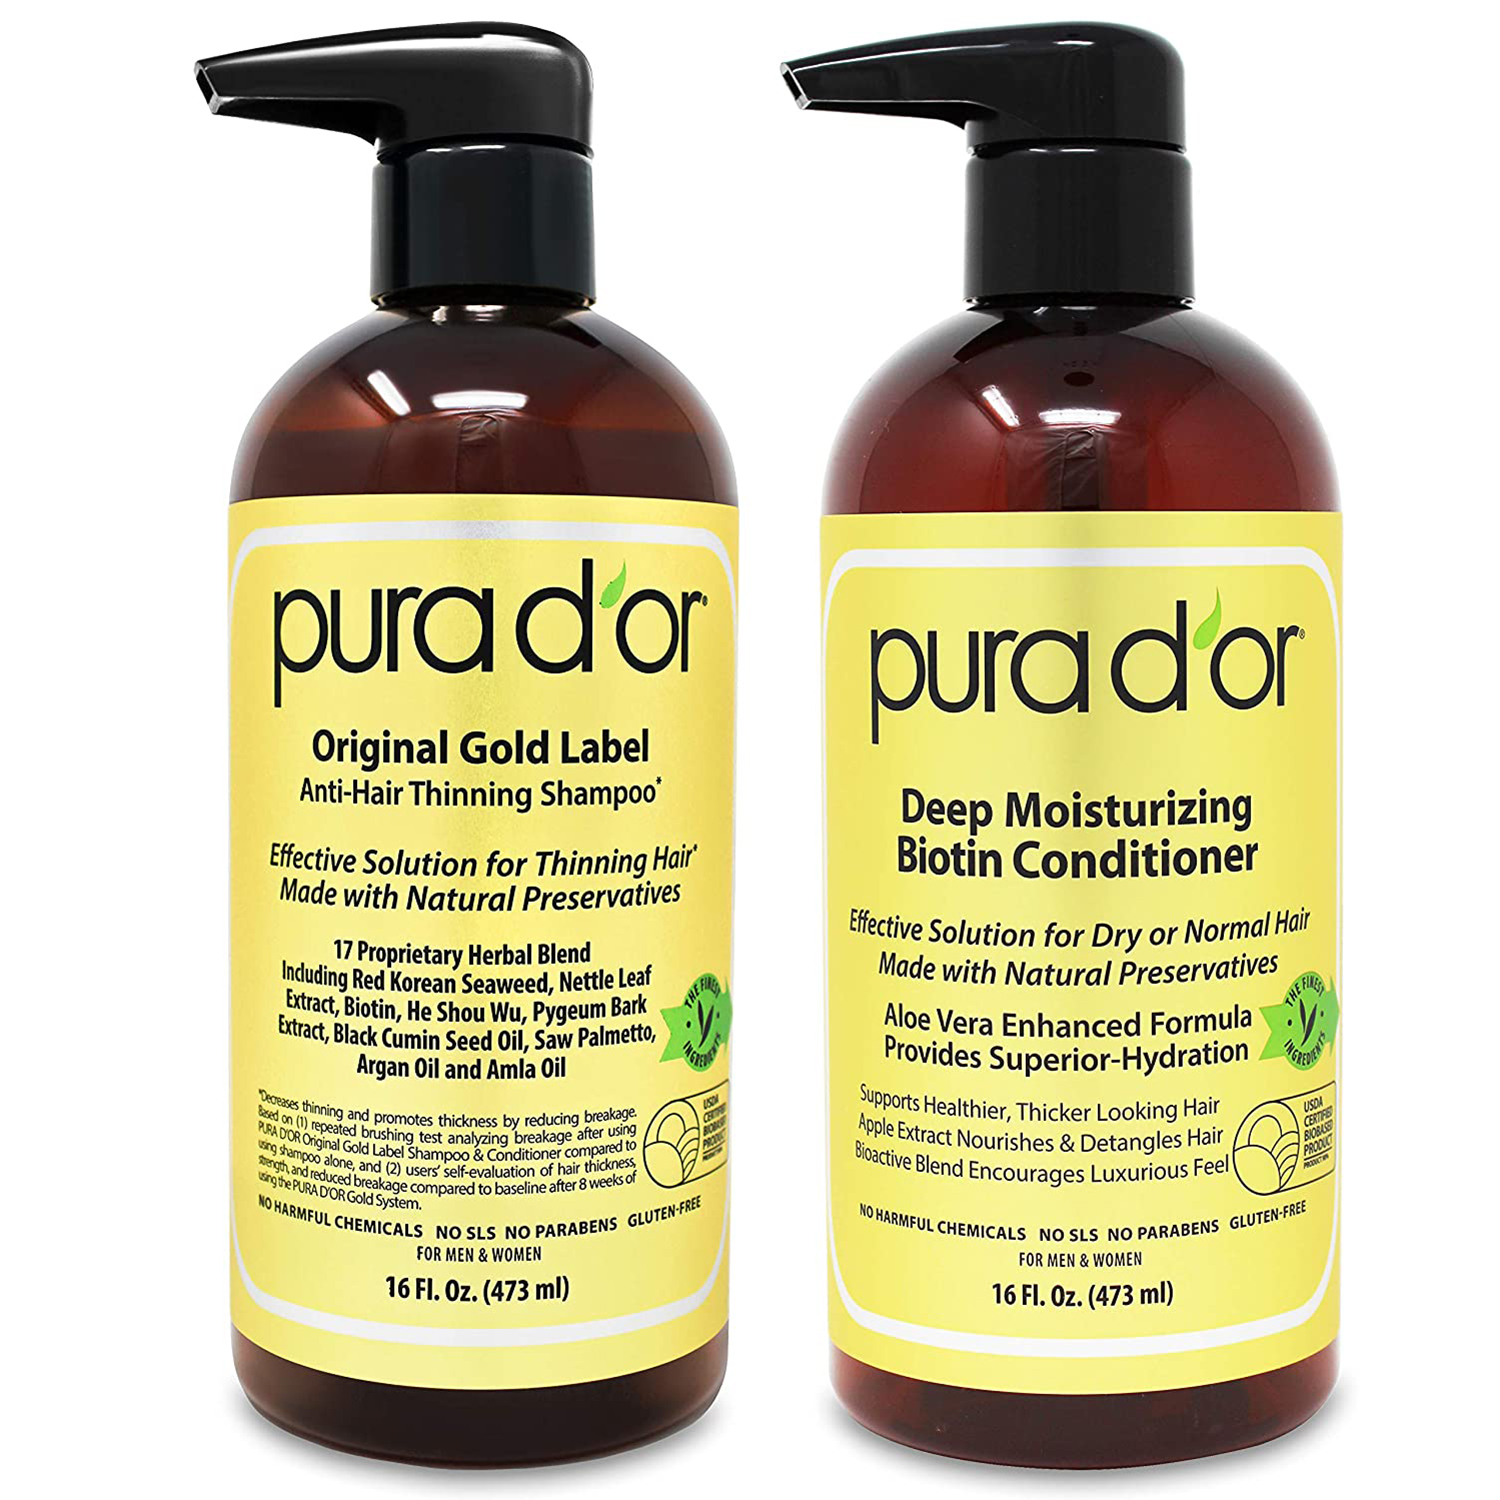 PURA D'OR Biotin Original Gold Label Anti-Thinning (16oz x 2) Shampoo & Conditioner Set